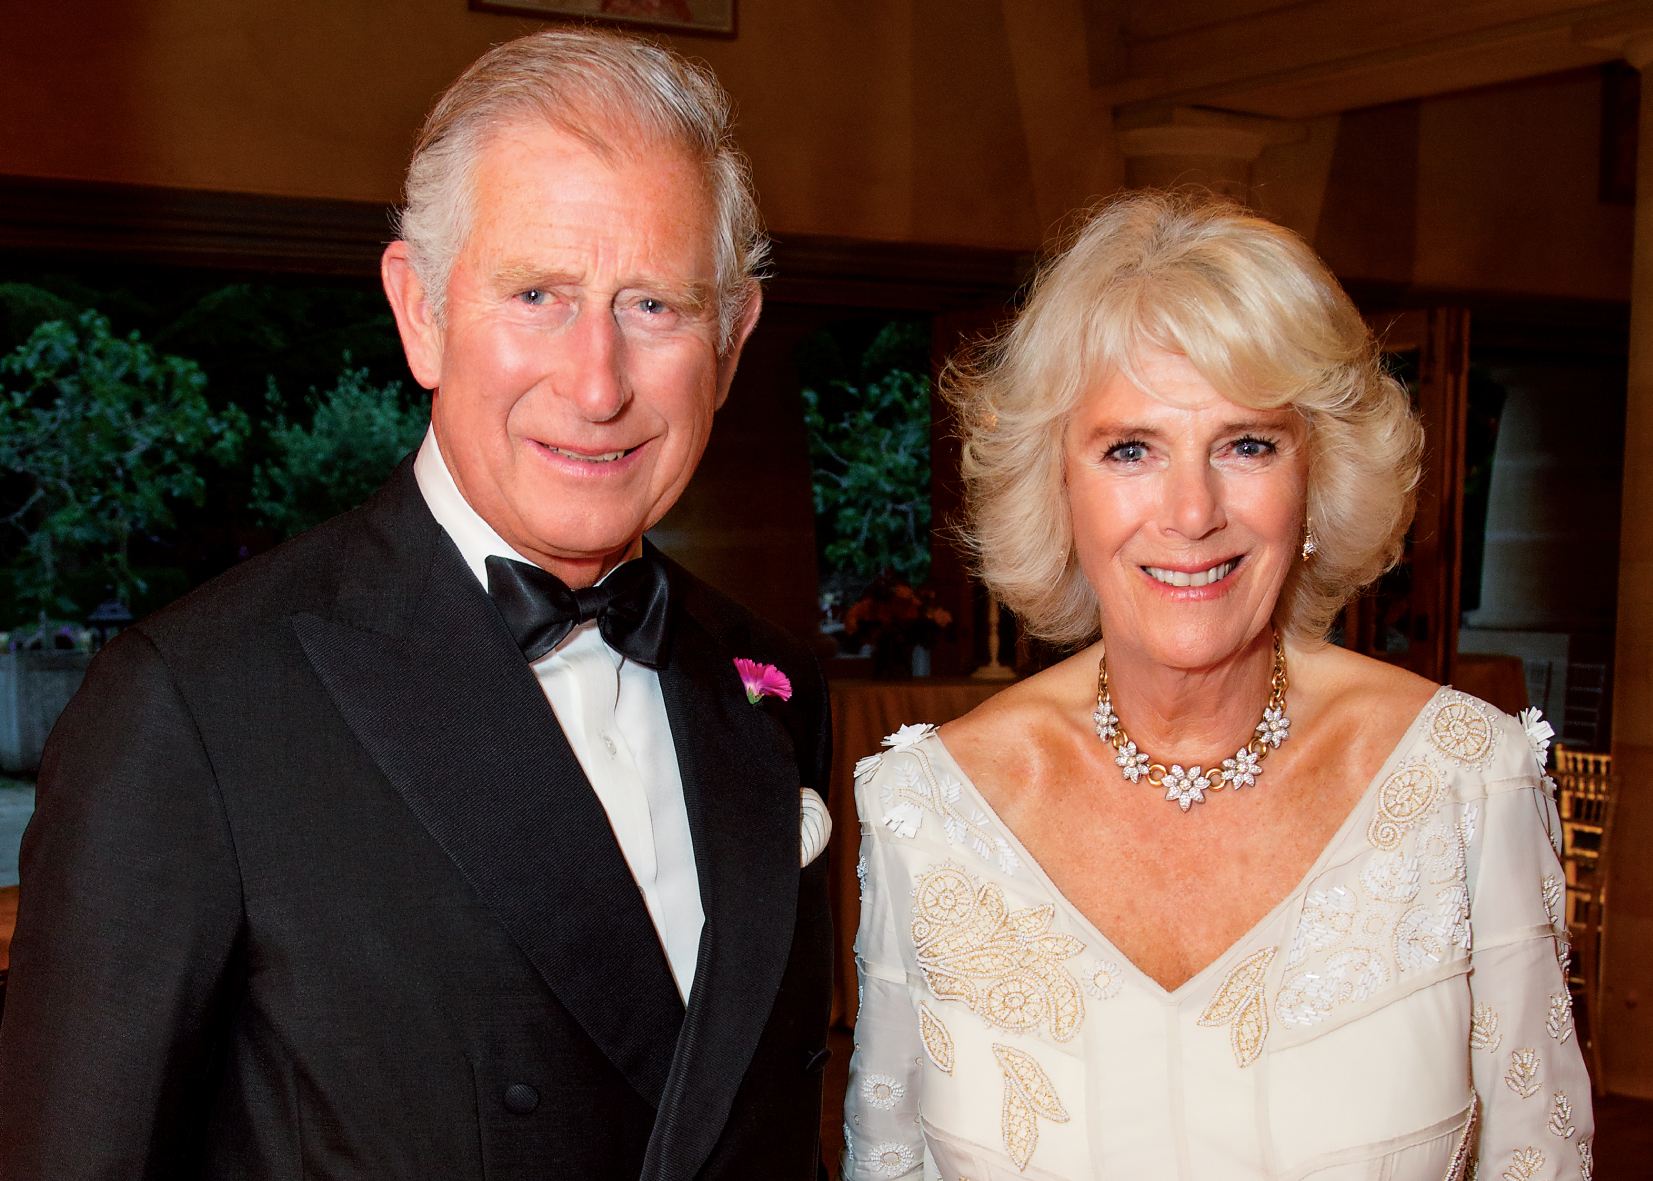 Prince-Charles-Duchess-of-Cornwall